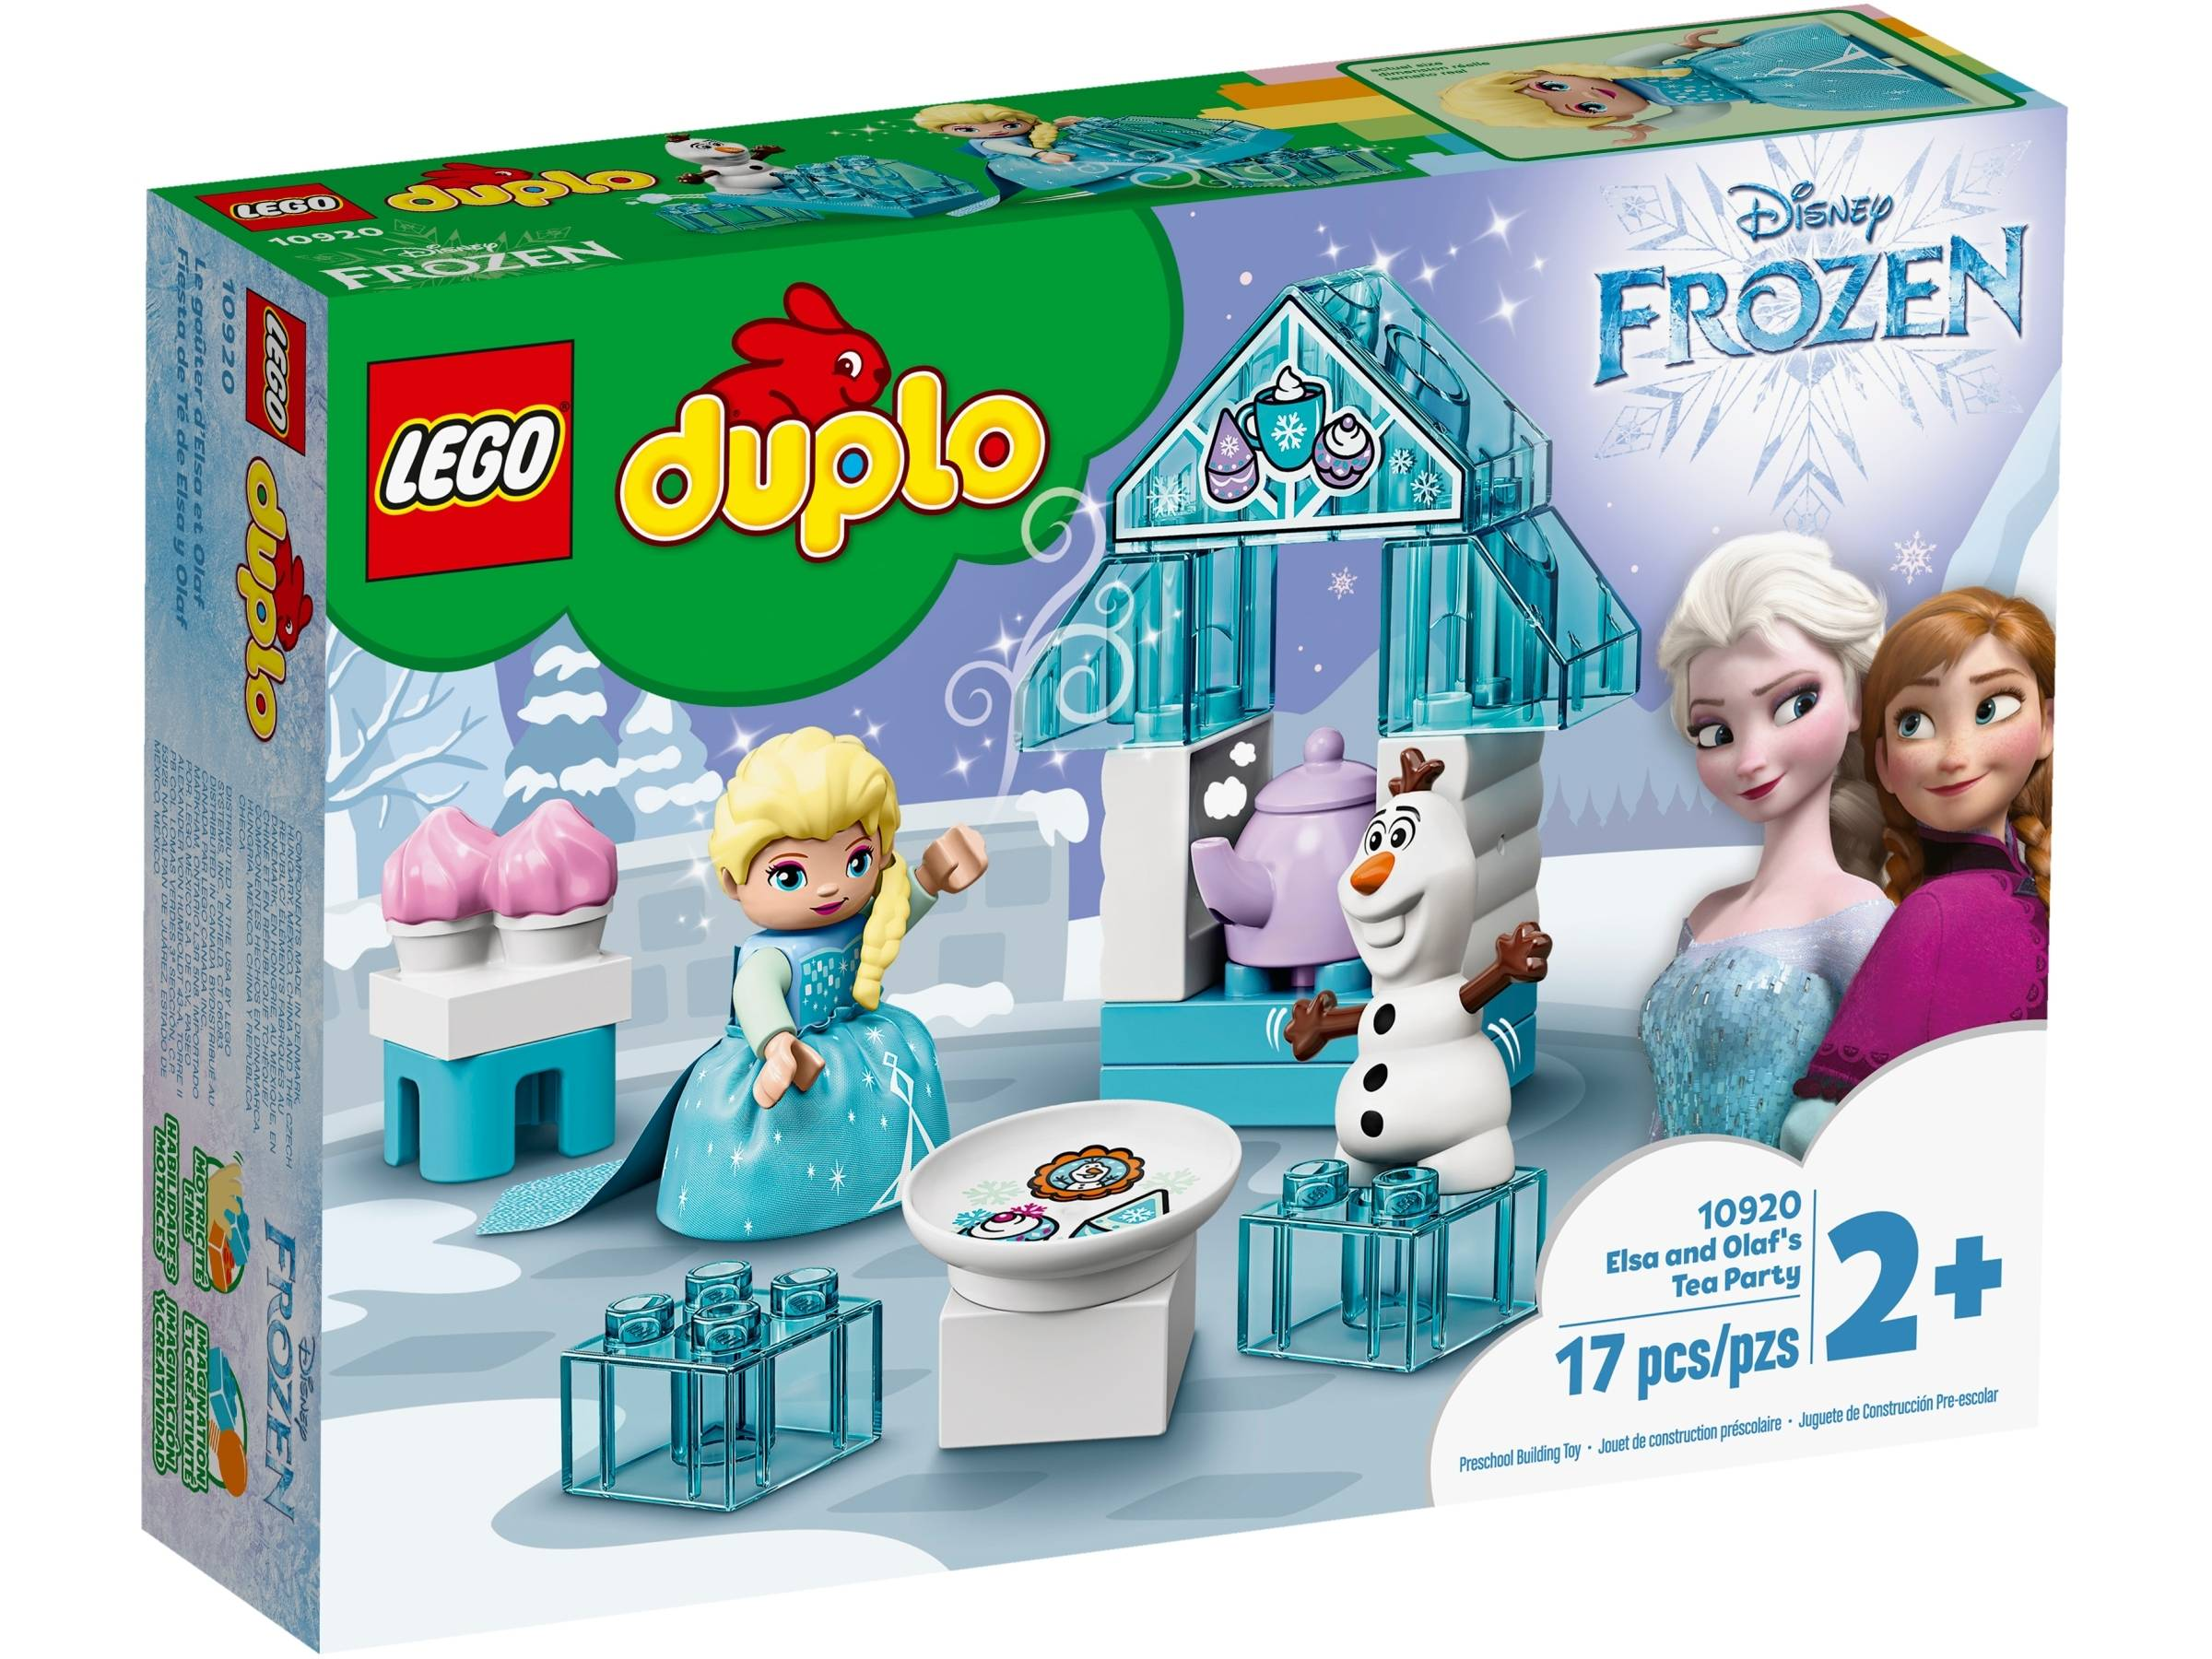 LEGO DUPLO Princess Elsa and Olaf's tea party